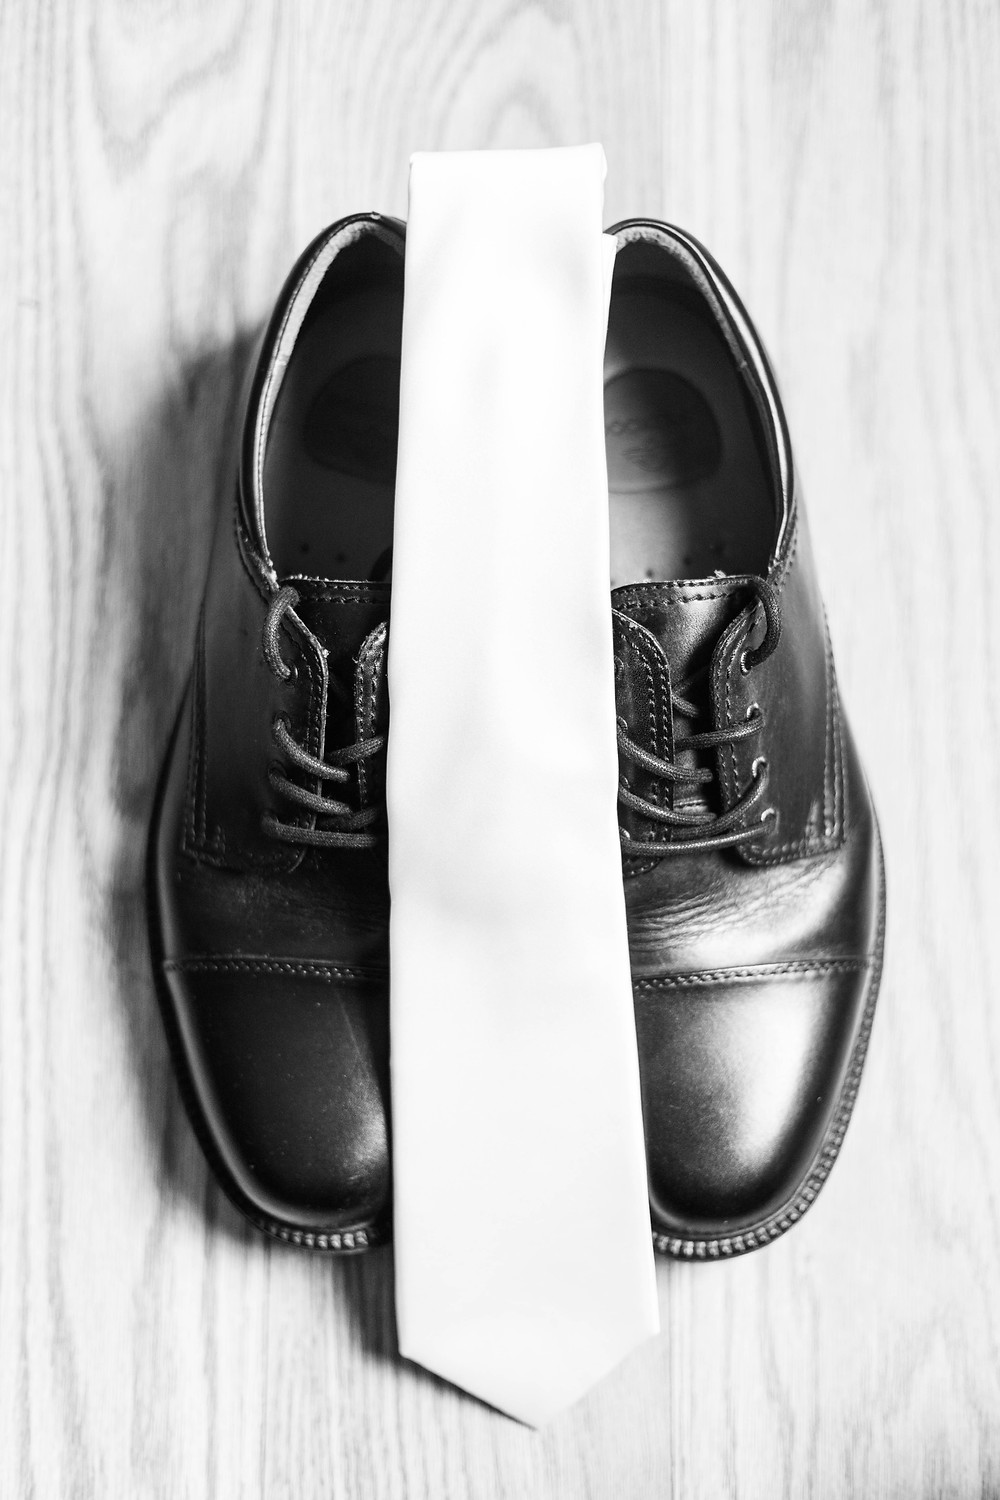 grooms black dress shoes and white tie detail photo Milledgeville Georgia